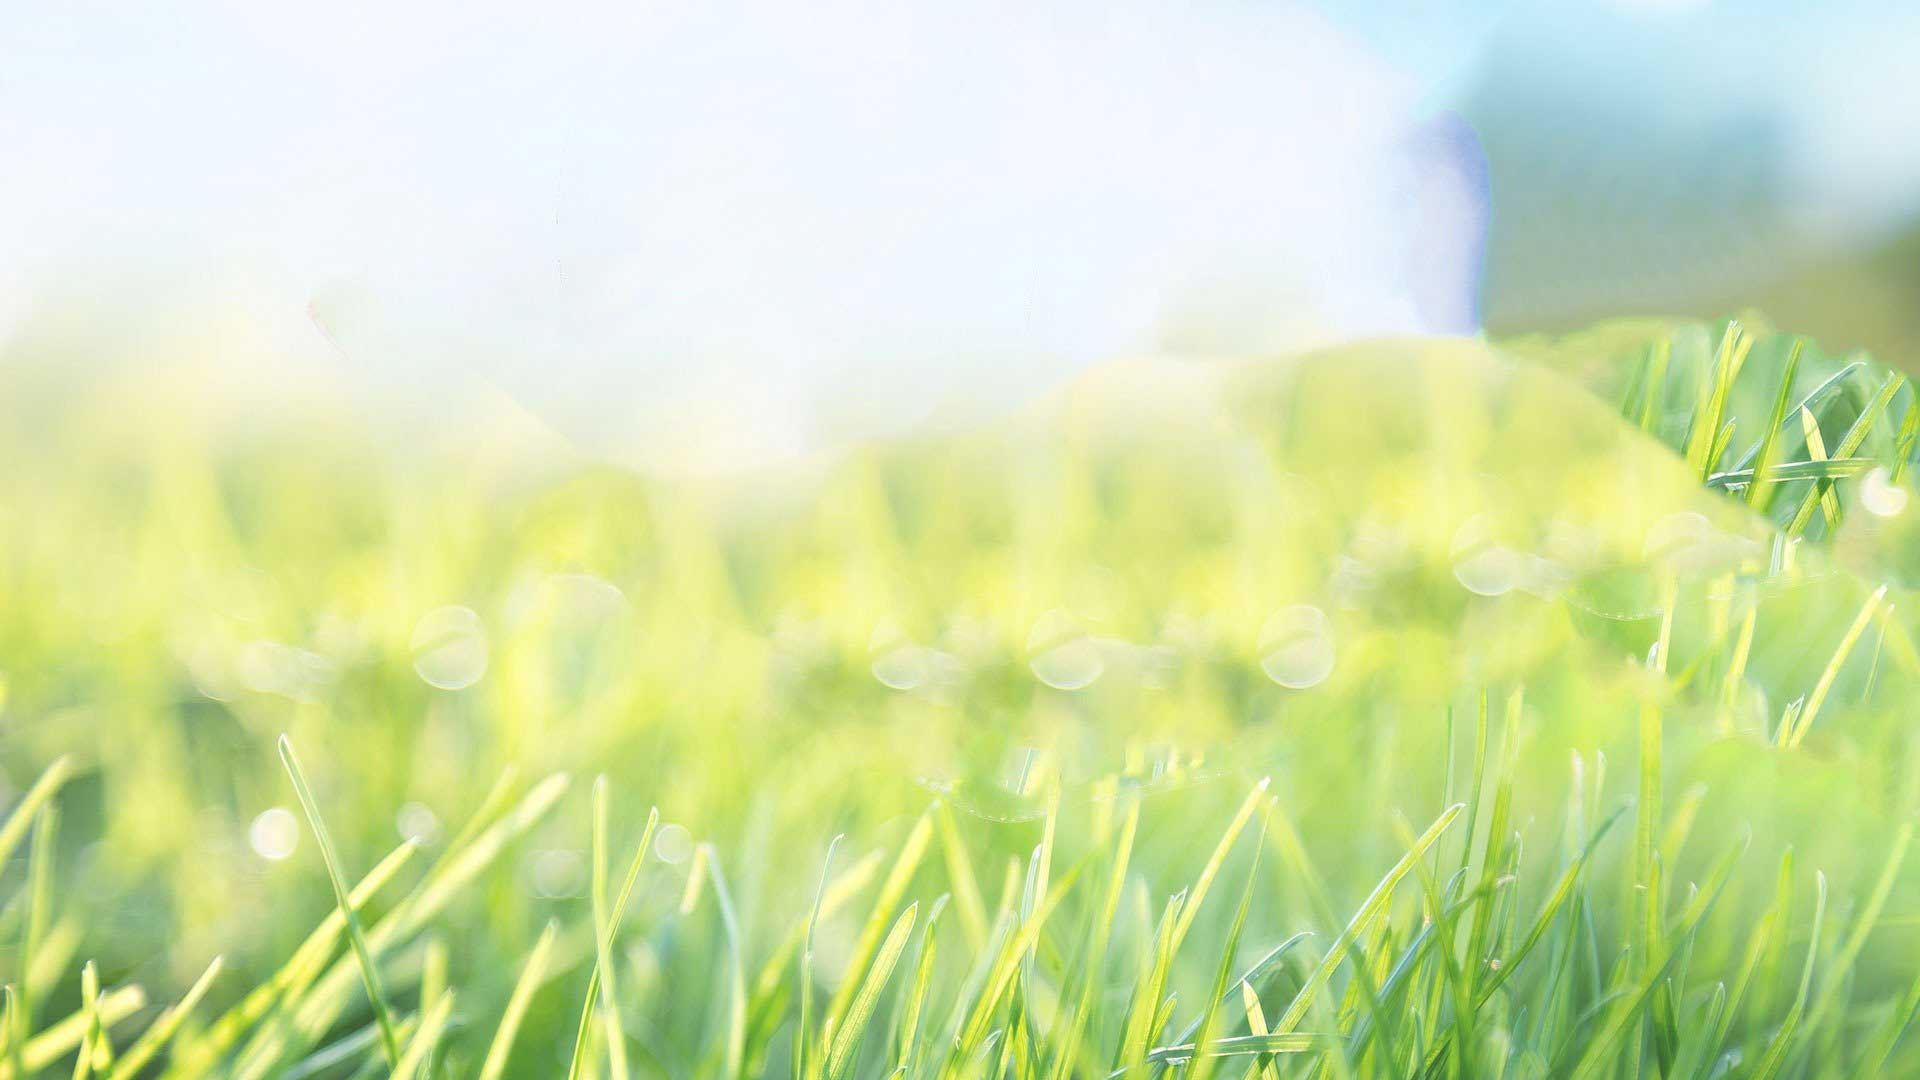 Elements Lawn Care brings life back into your lawn!